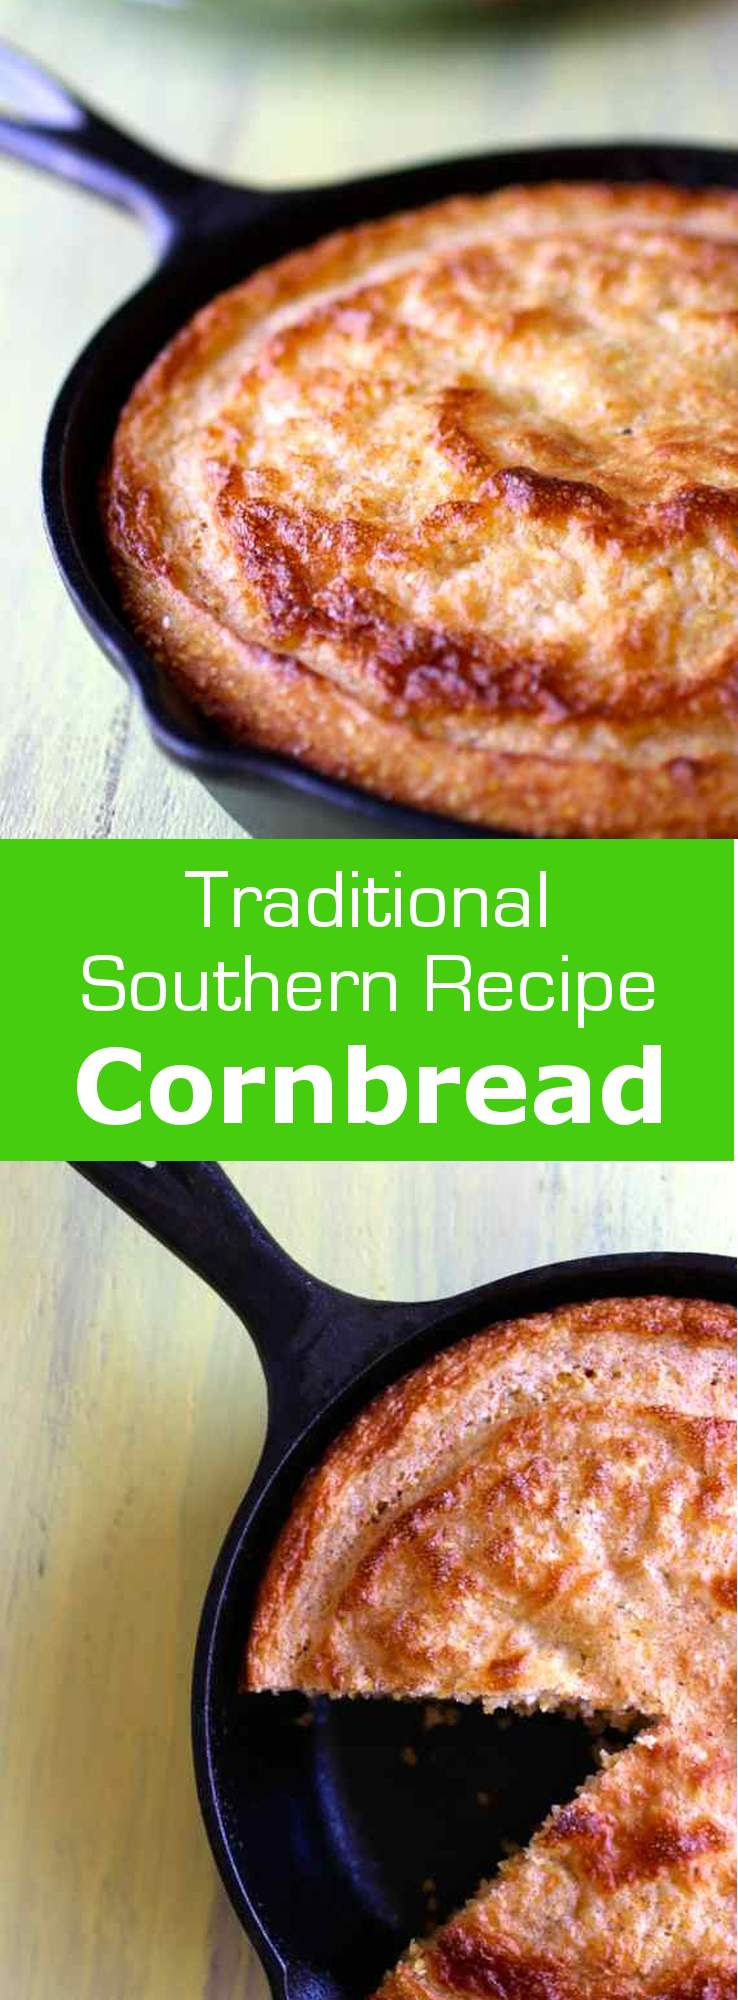 Cornbread is the traditional cornmeal-based bread that is typically associated with Southern cuisine. #vegetarian #bread #unitedstates #usa #american #southern